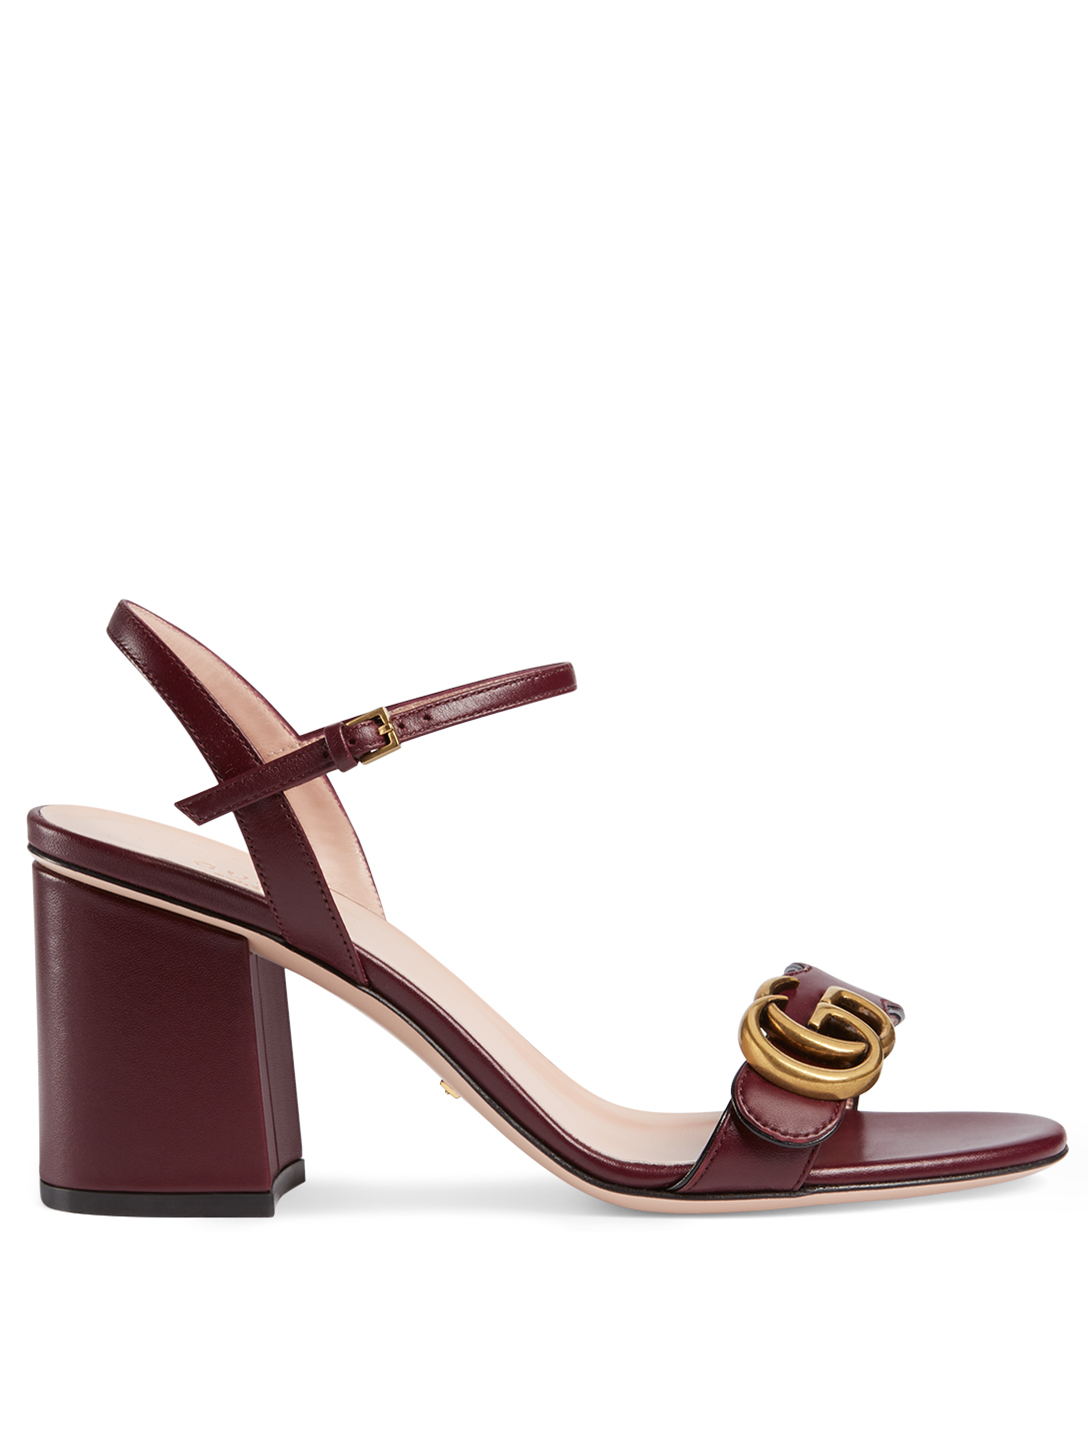 e13055e6b80 GUCCI Marmont Leather Heeled Sandals Women s Brown ...